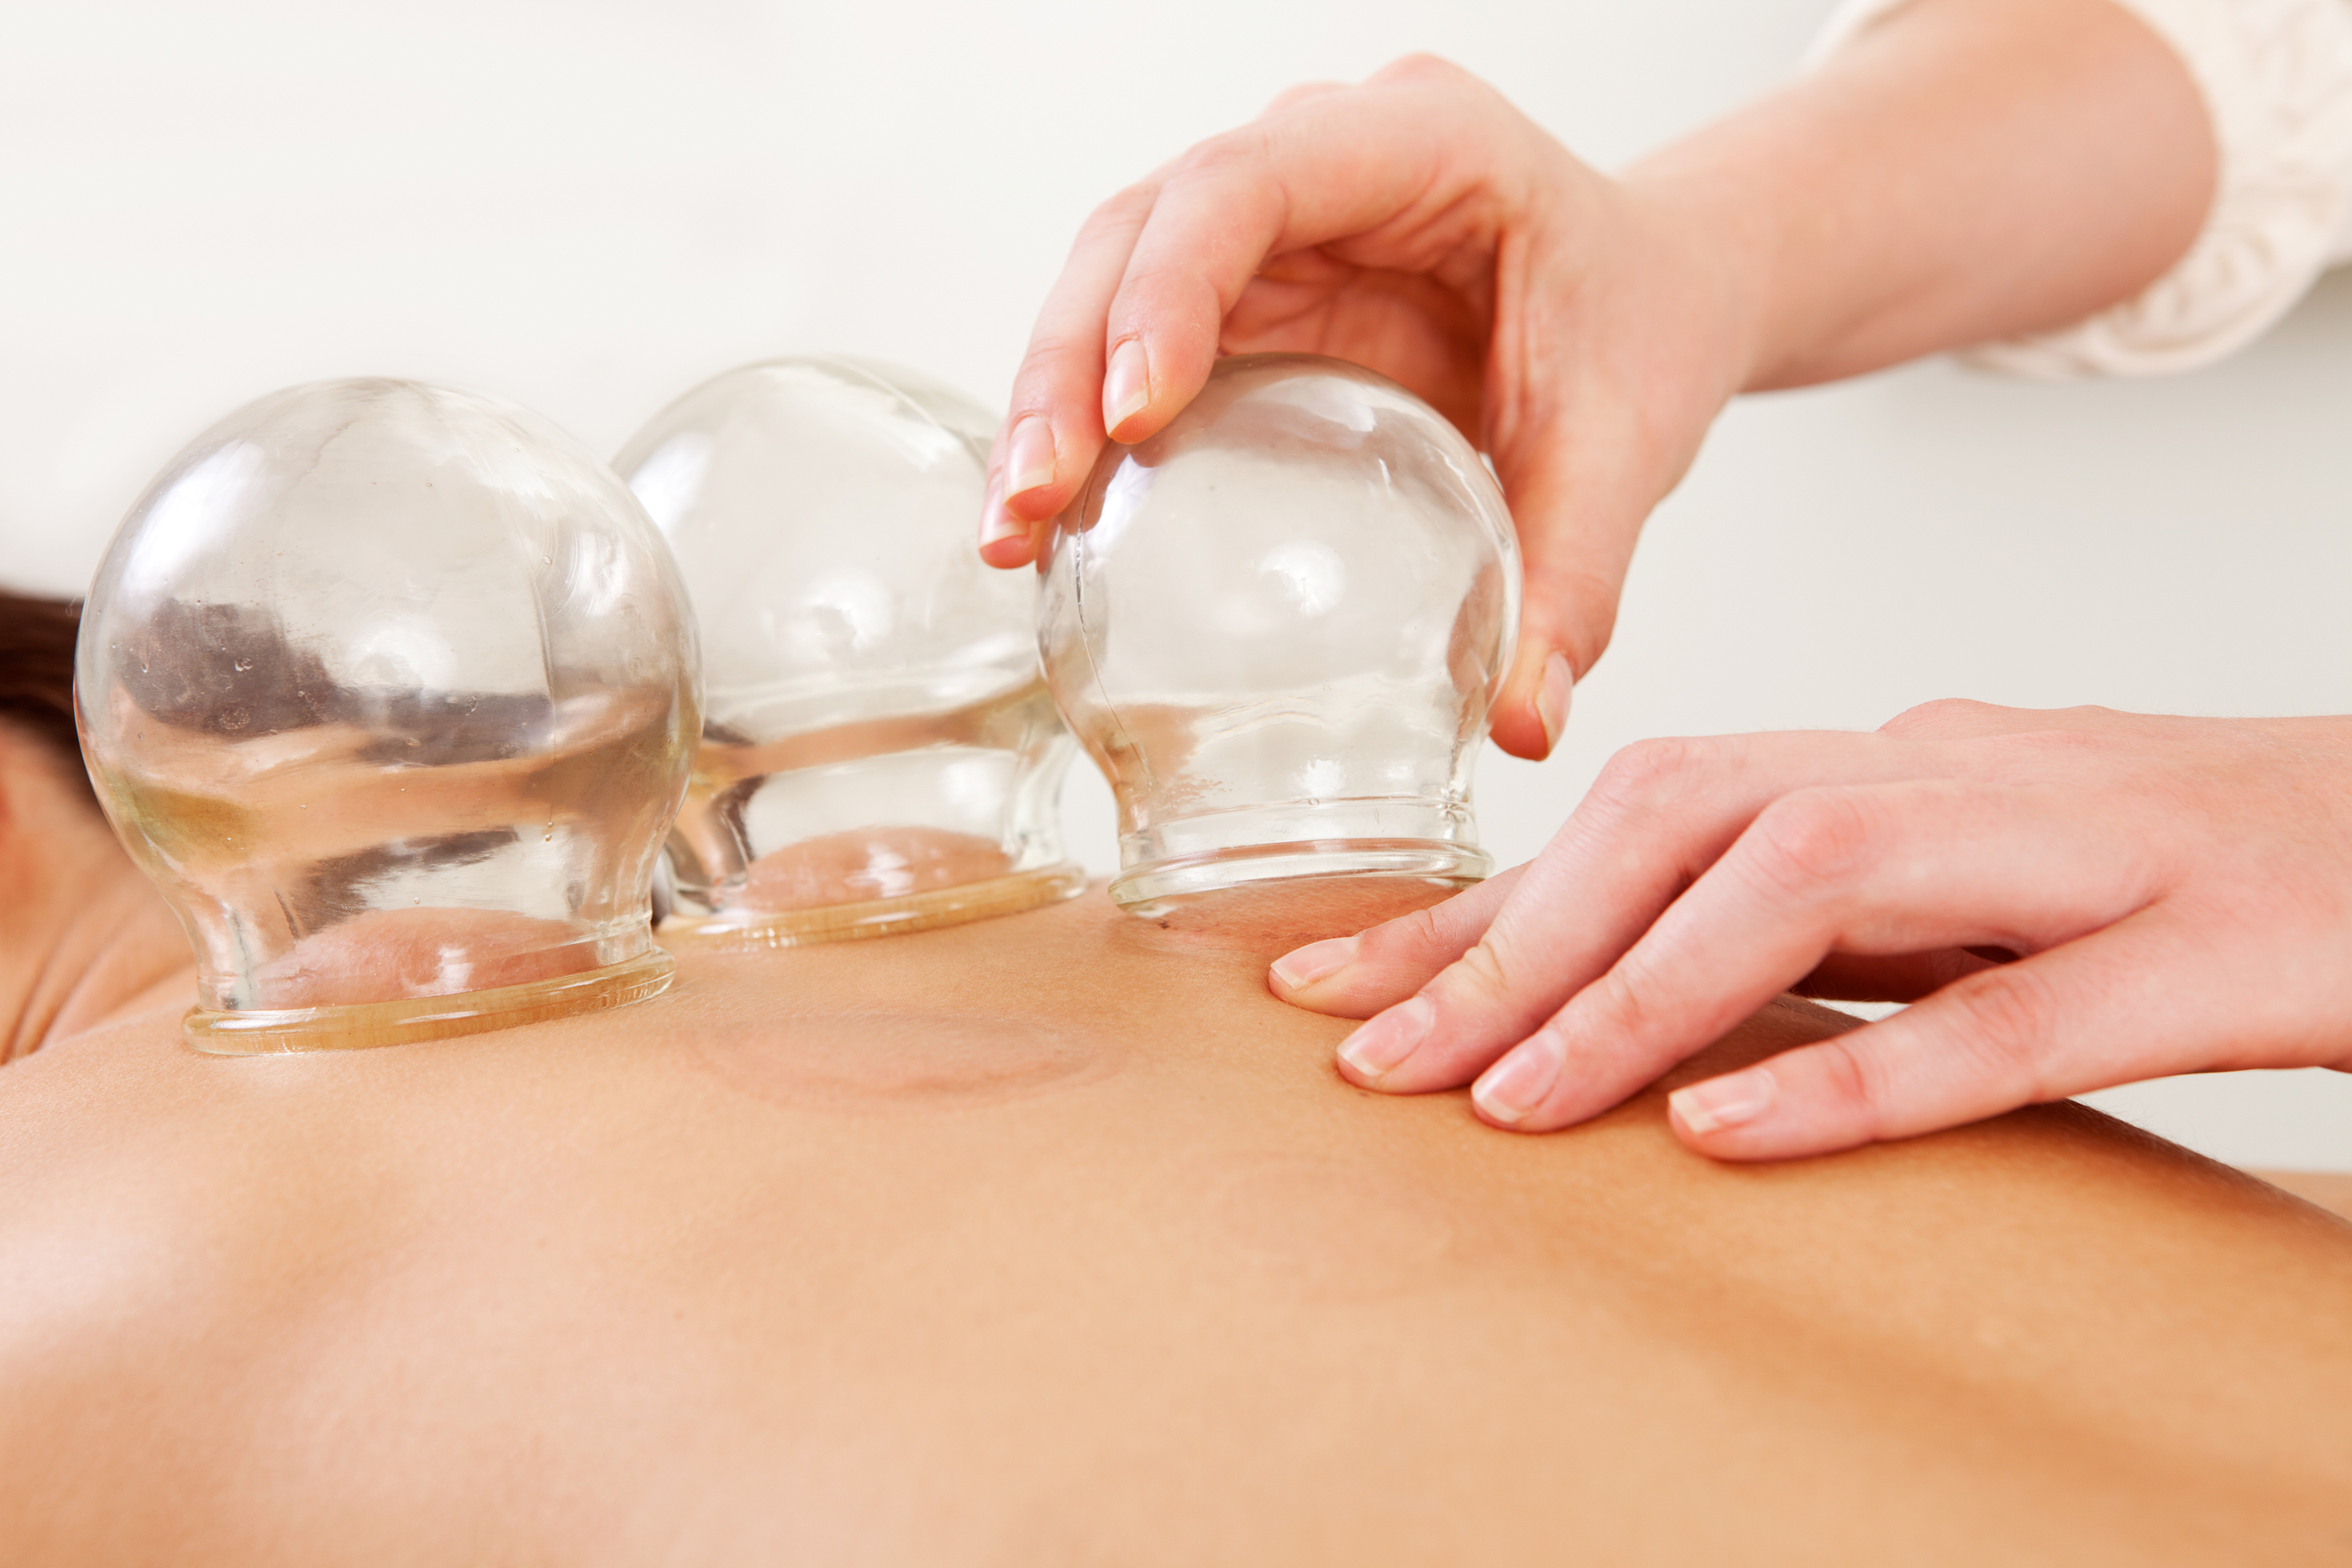 Now offering cupping therapy kaizen healing arts xflitez Gallery